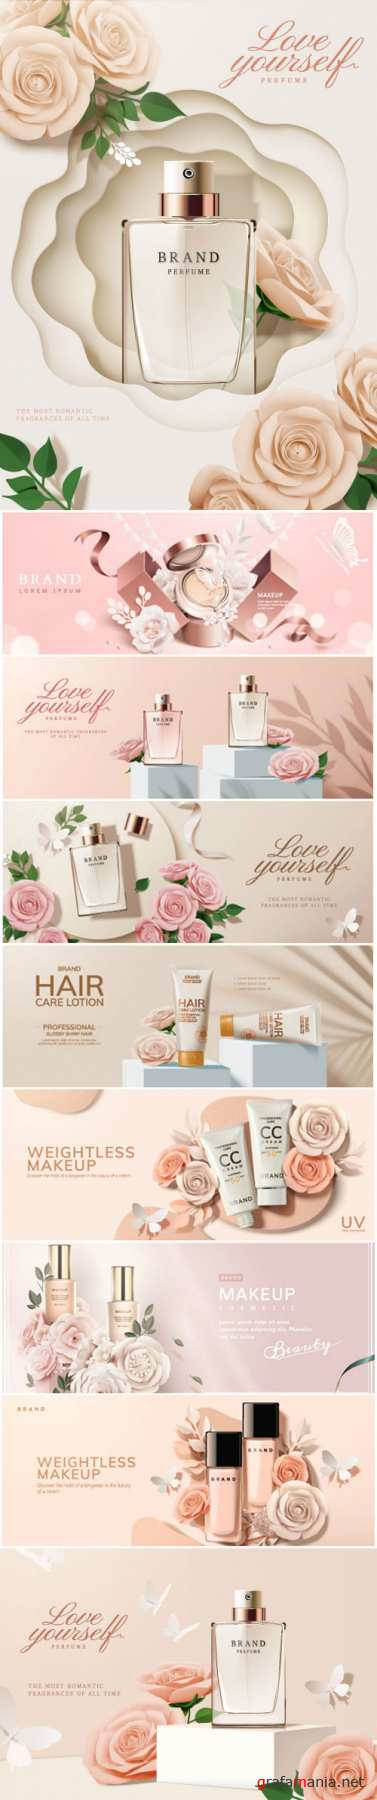 Brand cosmetic design, foundation banner ads # 2